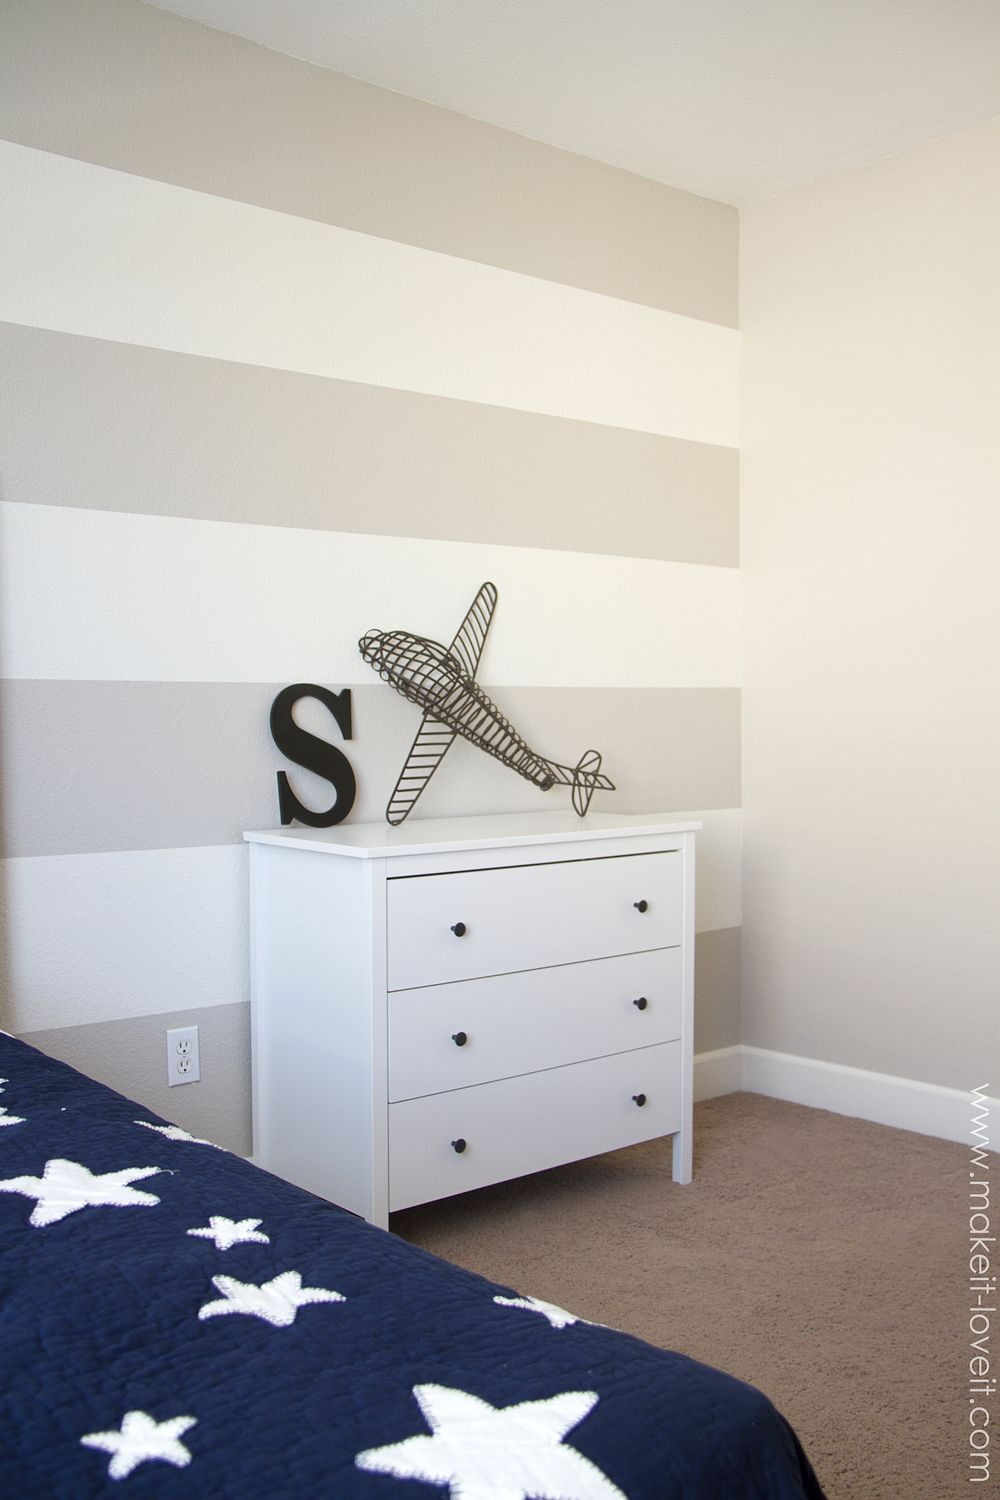 How To Paint Super Straight Horizontal Stripes Kids Room